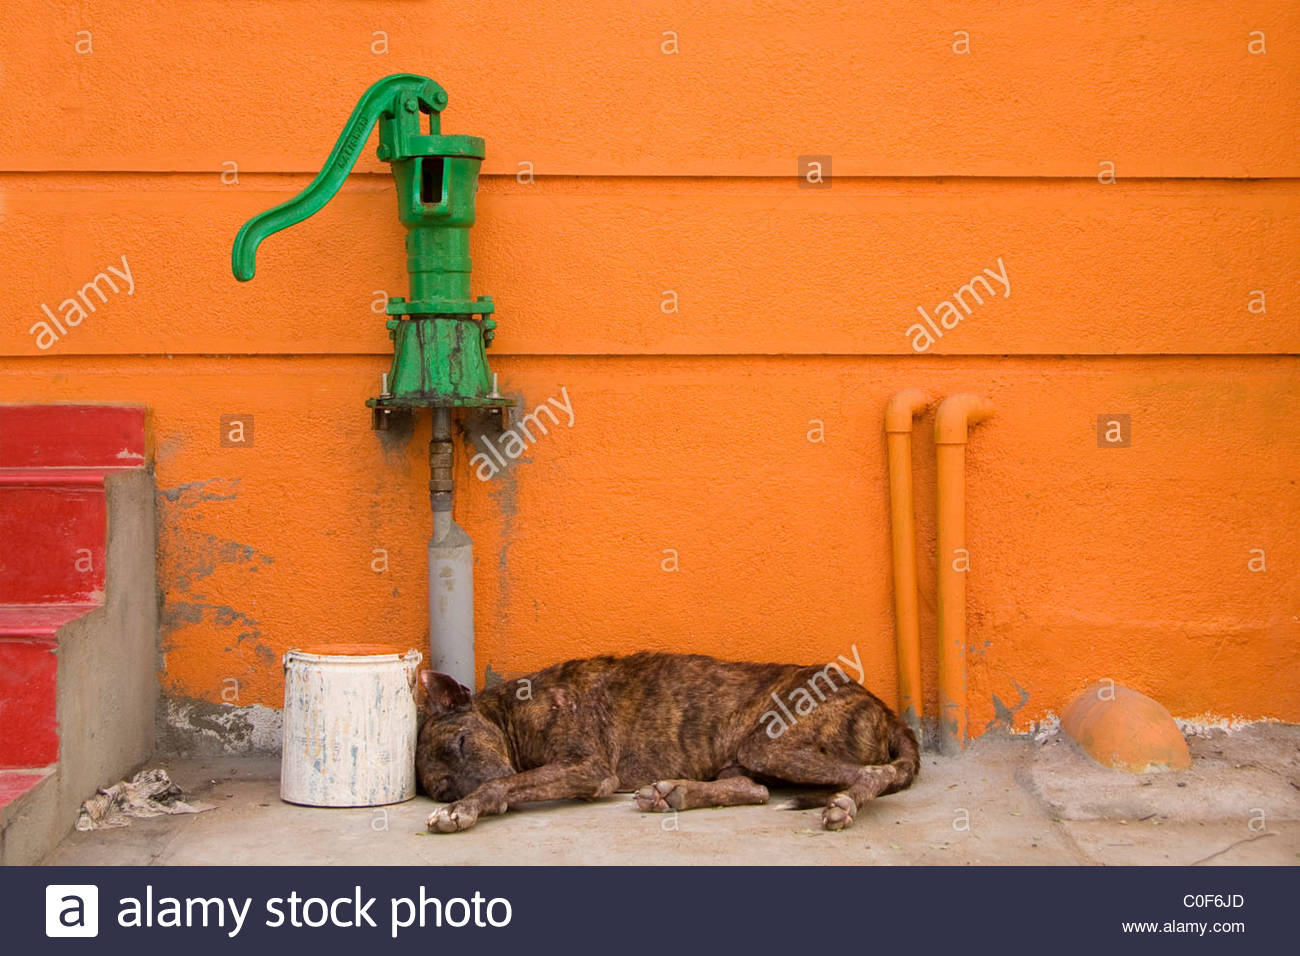 Dog sleeping on the street in front of an orange house with red steps and green water pump in South India - Stock Image